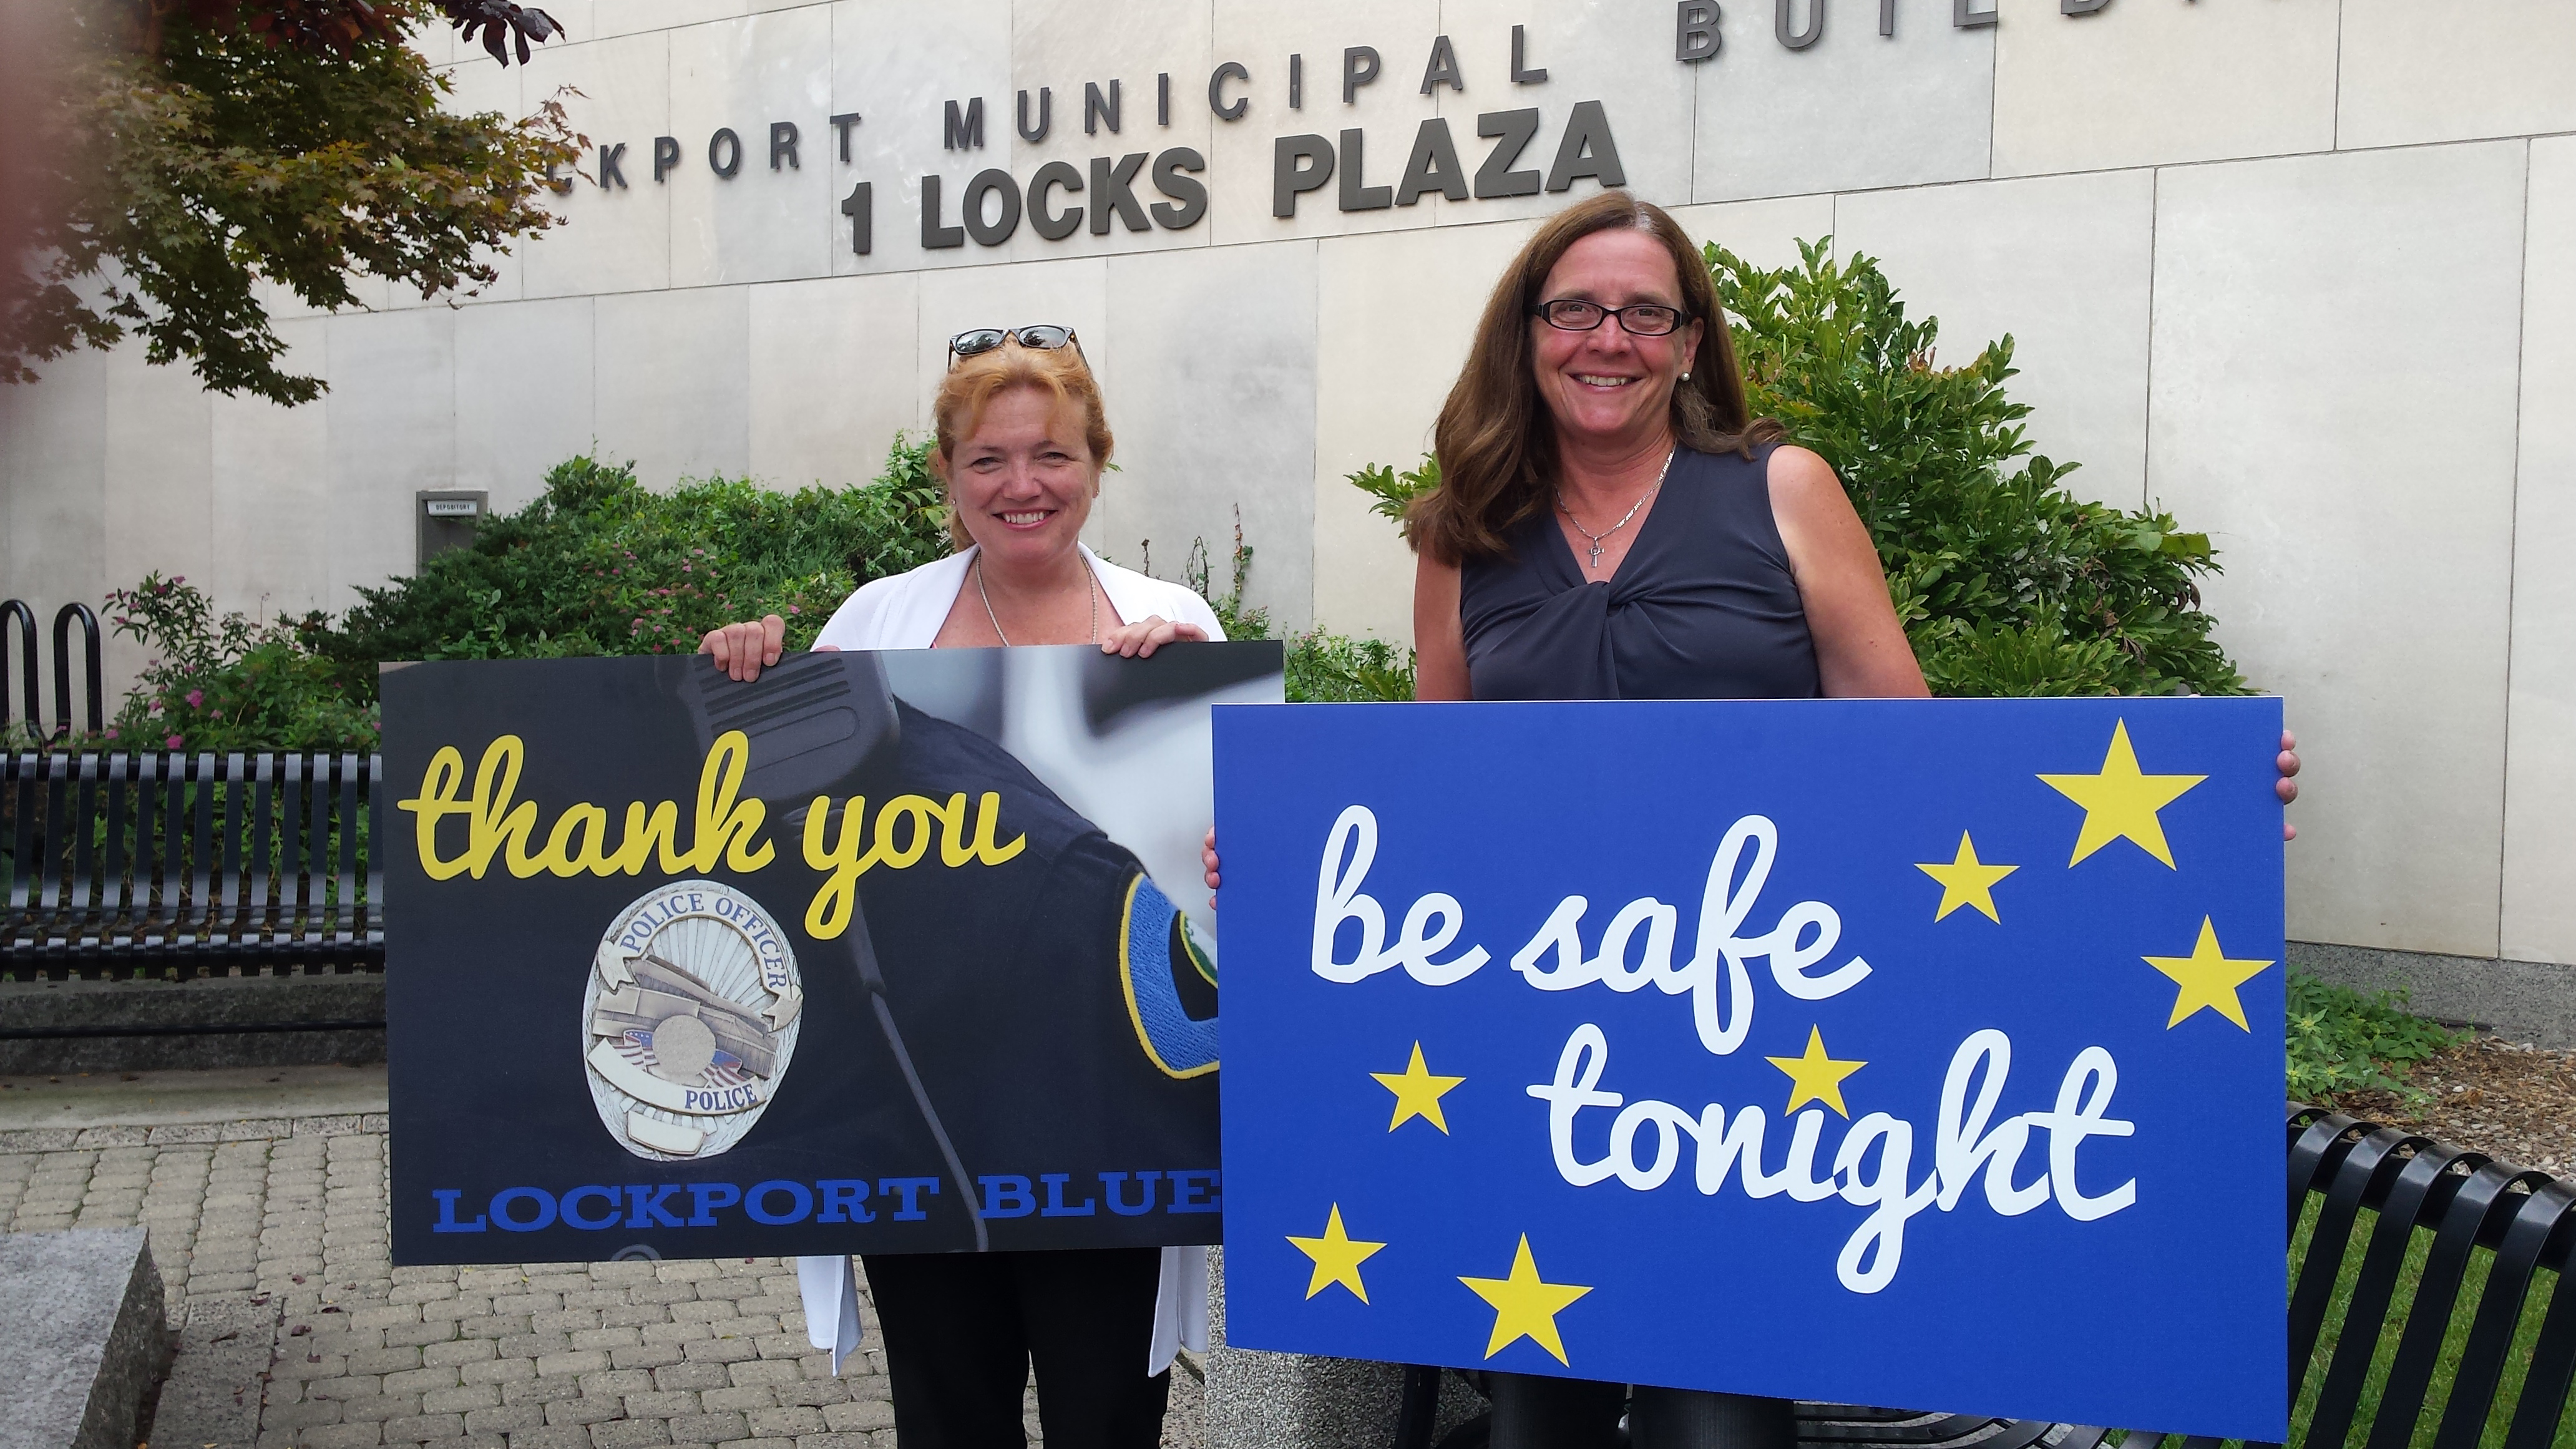 Ellen Martin (left) and Mary Brennan Taylor launched a public campaign on Oct. 1, 2016 to show support for the City of Lockport Police Department.